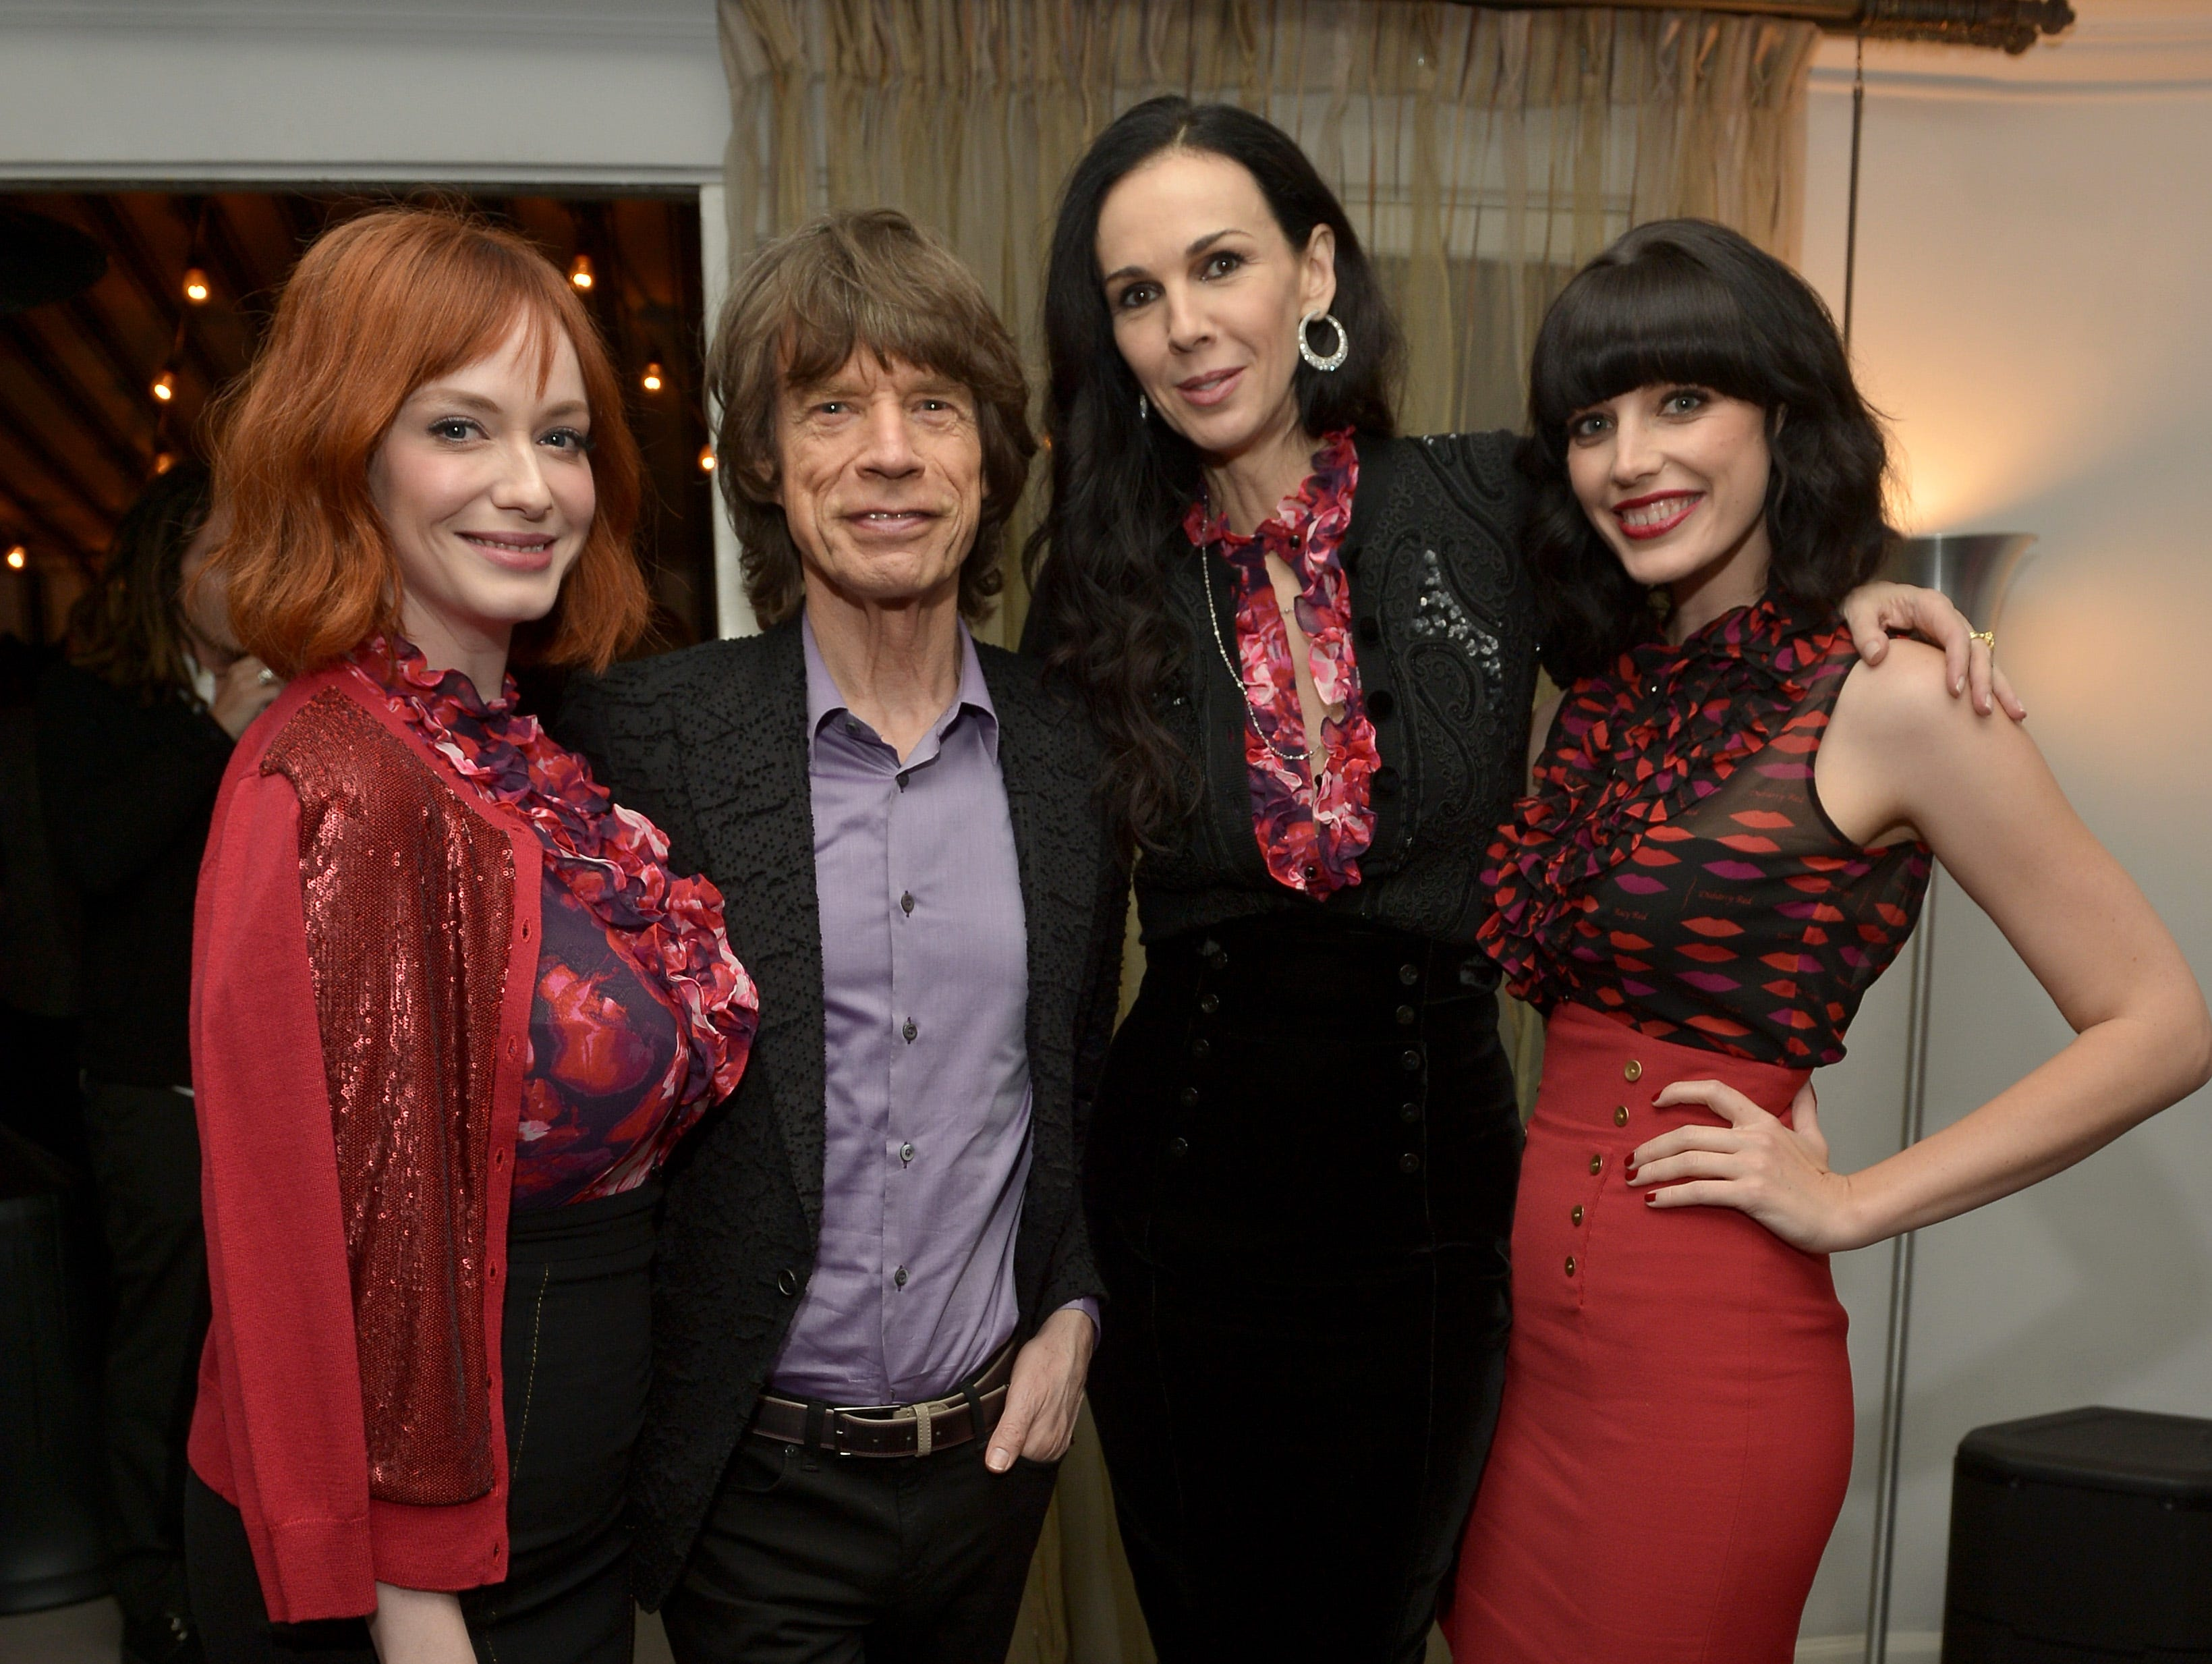 LOS ANGELES, CA - NOVEMBER 19:  (L-R) Actress Christina Hendricks, singer Mick Jagger, fashion designer L'Wren Scott, and actress Jessica Pare attend the launch celebration of the Banana Republic L'Wren Scott Collection hosted by Banana Republic, L'Wren Scott and Krista Smith at Chateau Marmont on November 19, 2013 in Los Angeles, California.  (Photo by Charley Gallay/Getty Images for Banana Republic) ORG XMIT: 187206345 ORIG FILE ID: 450681199